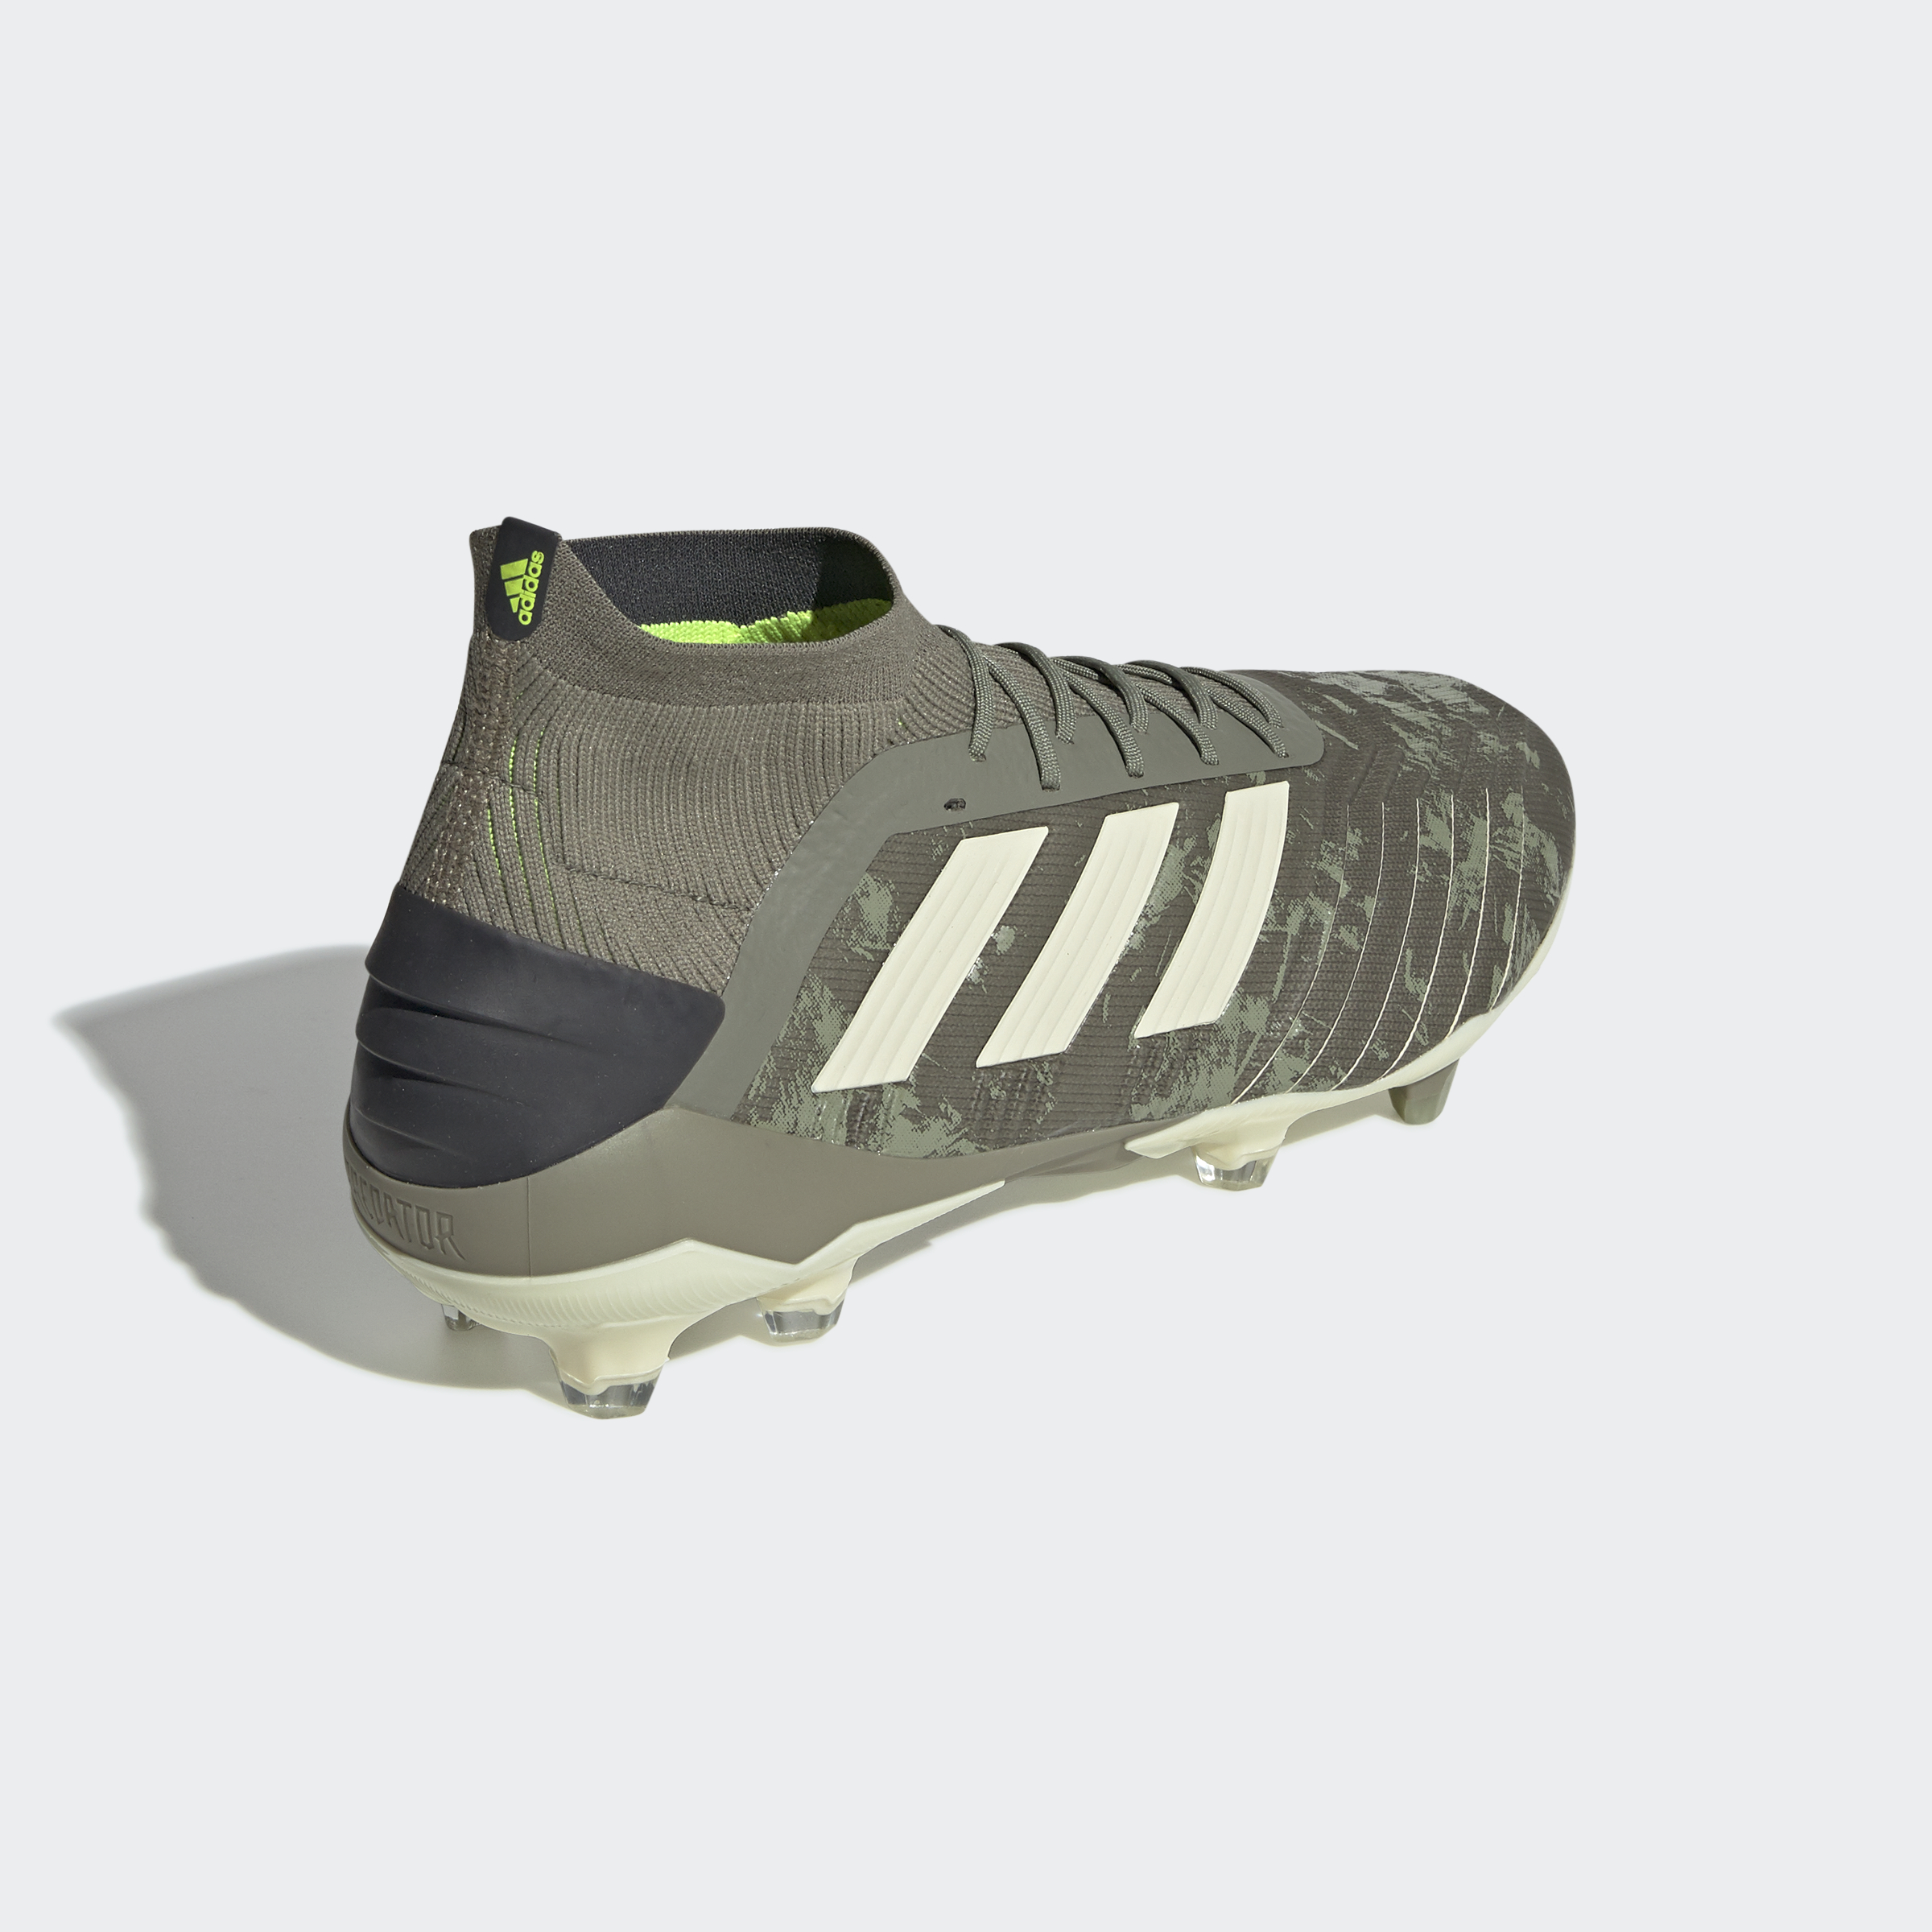 adidas-Predator-19-1-Firm-Ground-Cleats-Football-Boots thumbnail 11